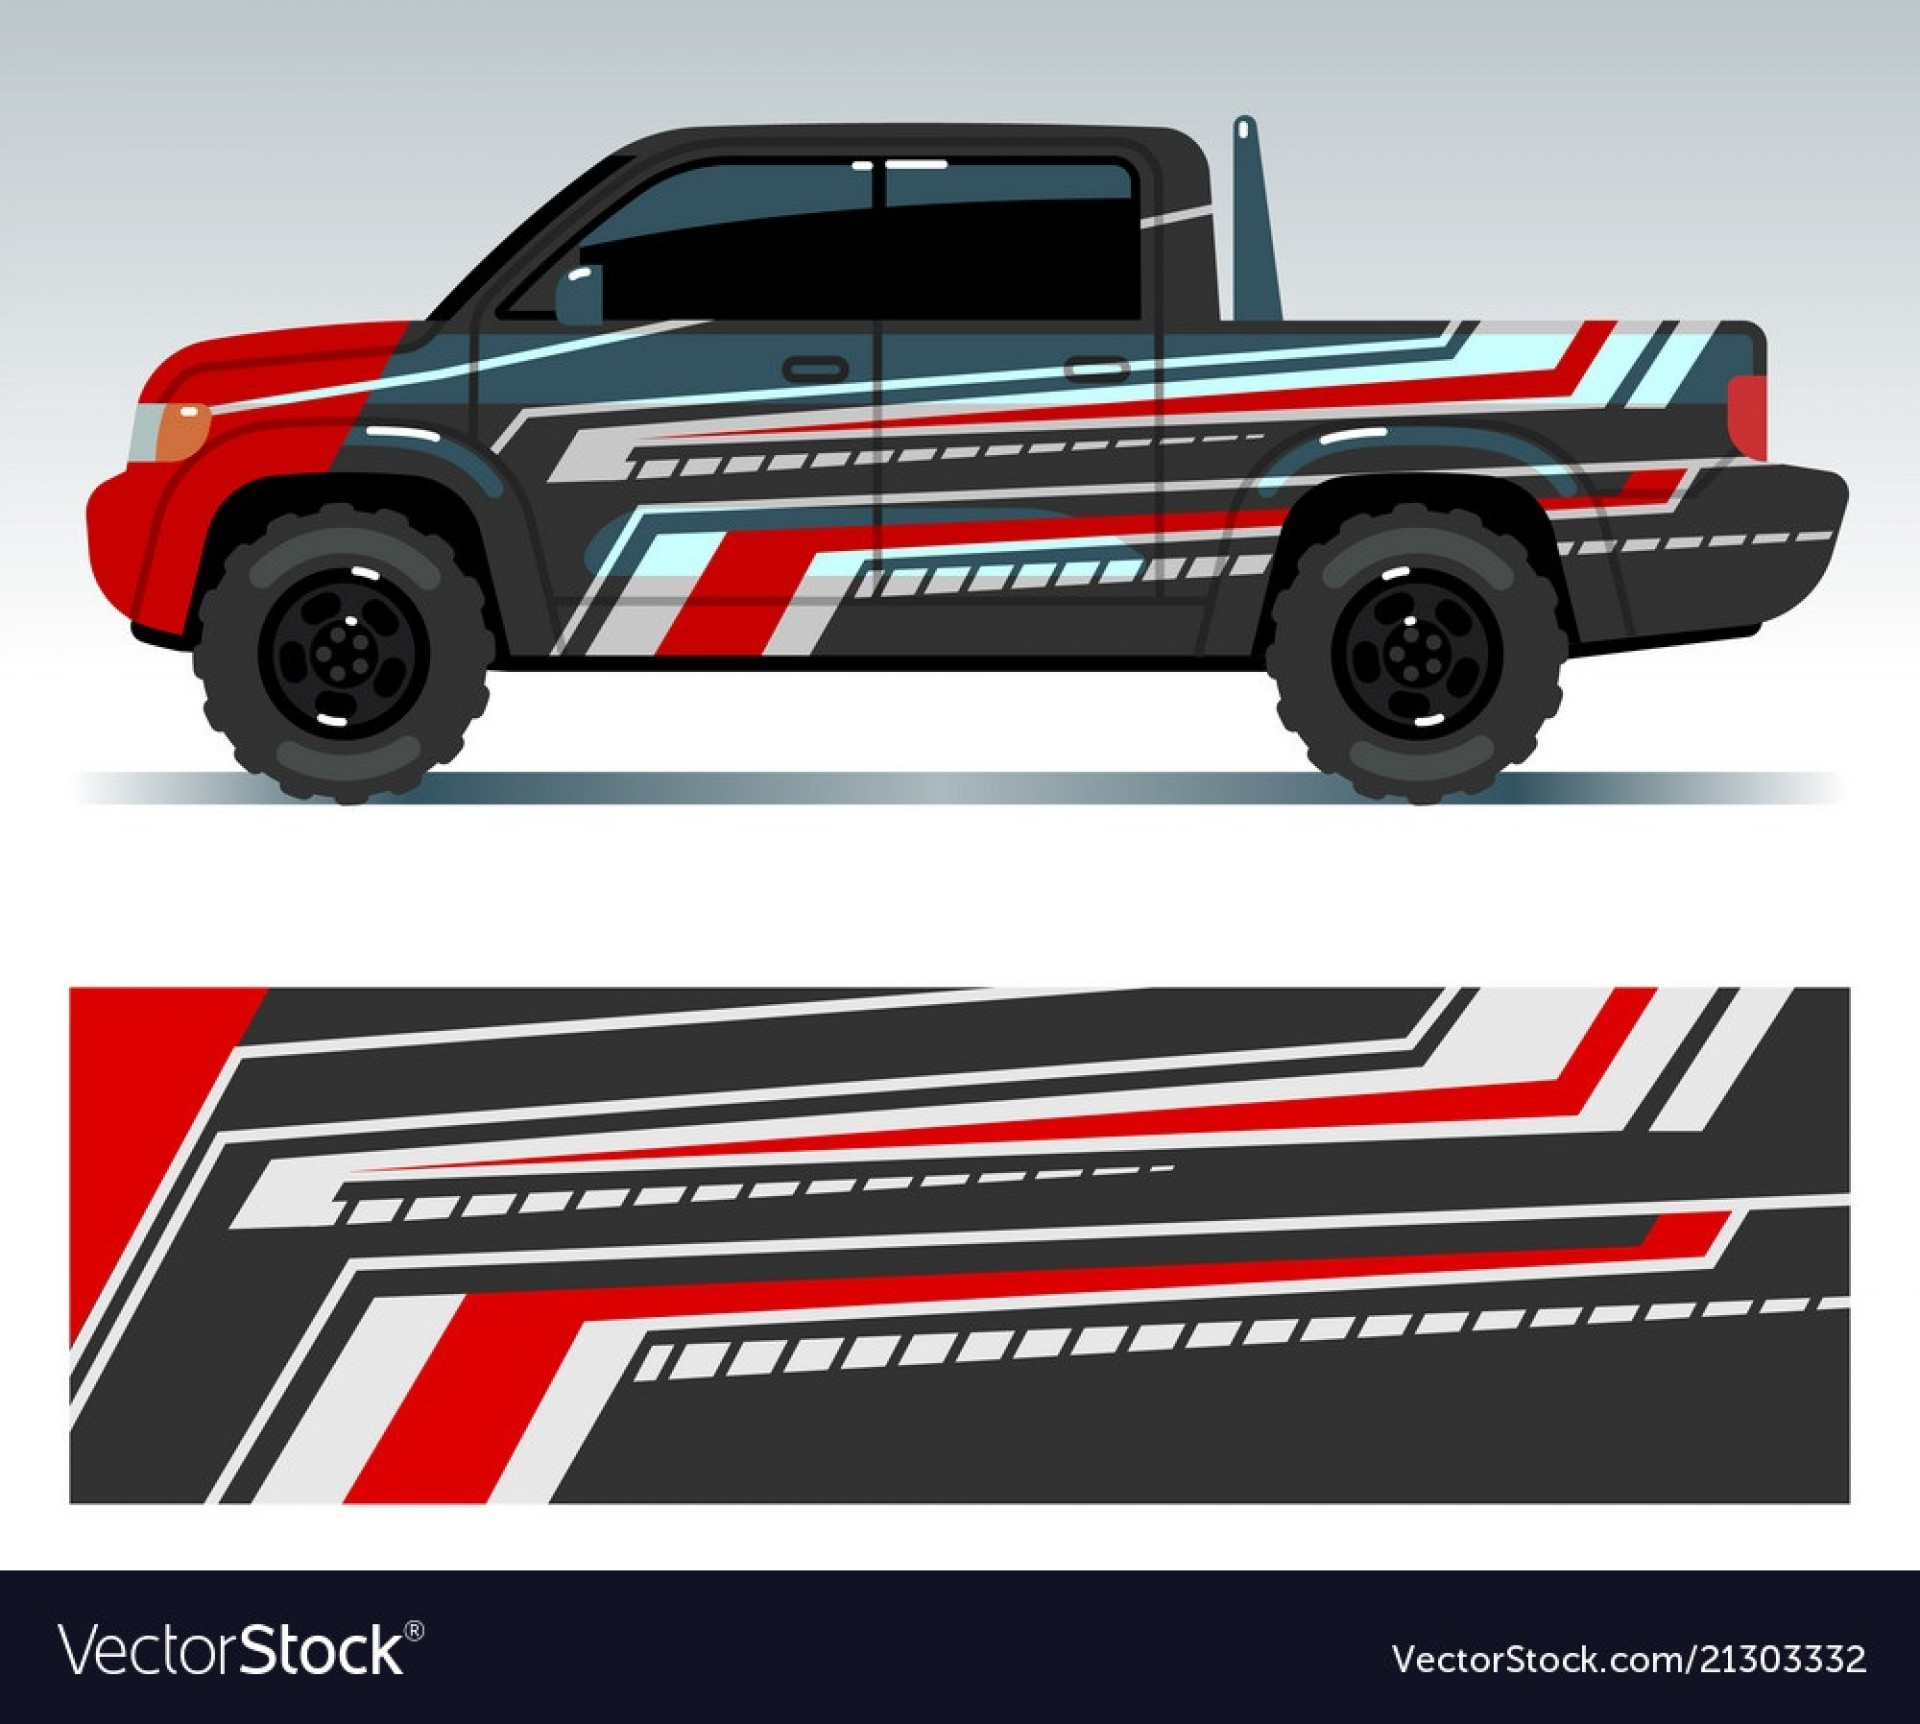 005 Marvelou Vehicle Wrap Template Free Download High Resolution  Downloads Car1920